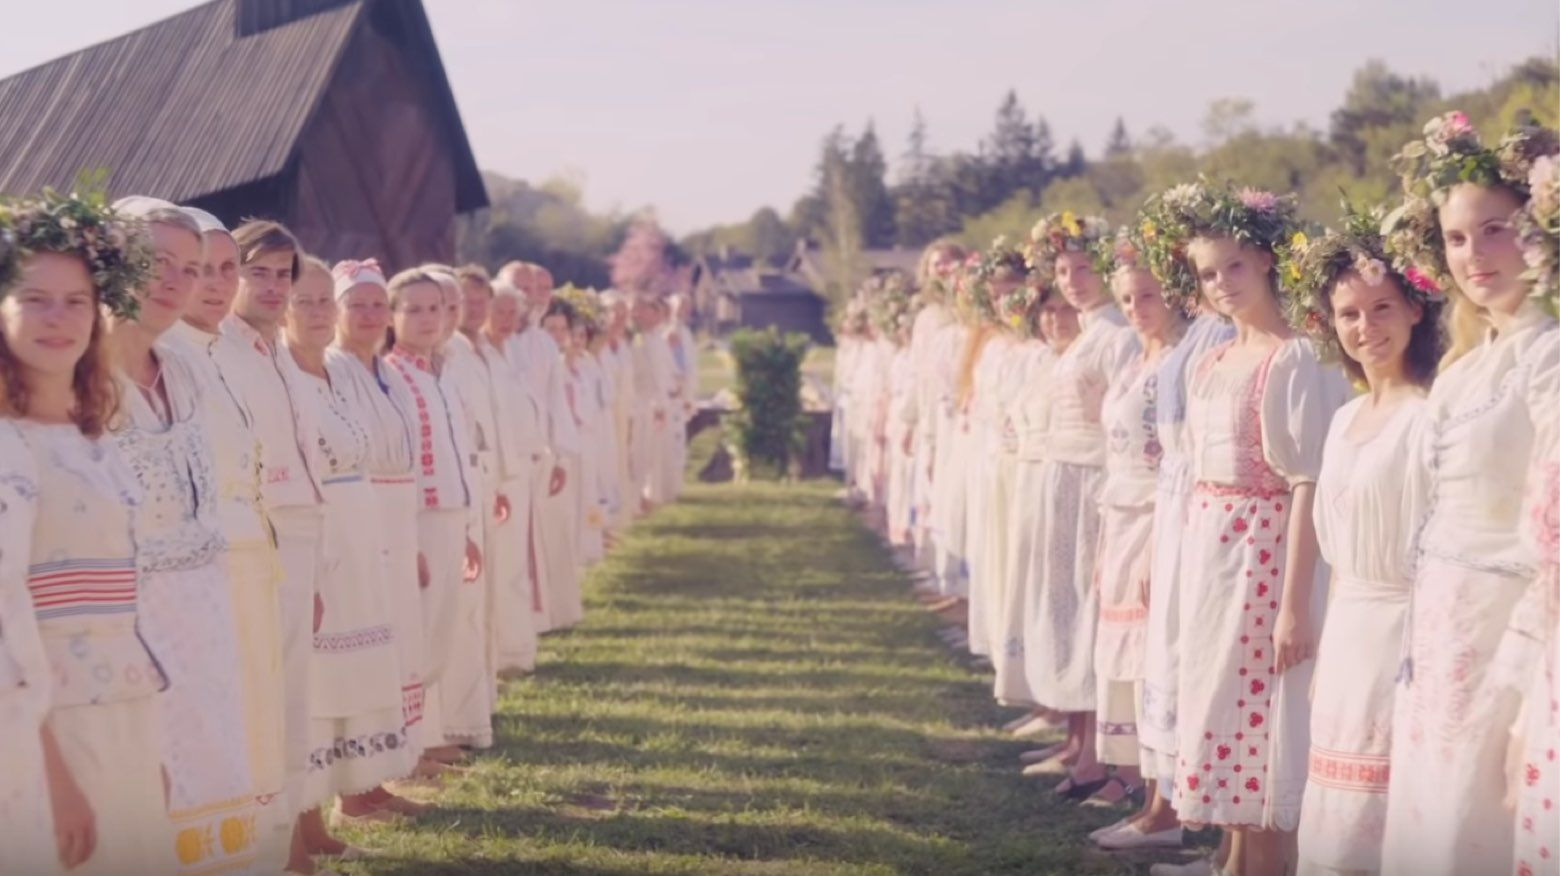 midsommar mythology explained from runes to ritual